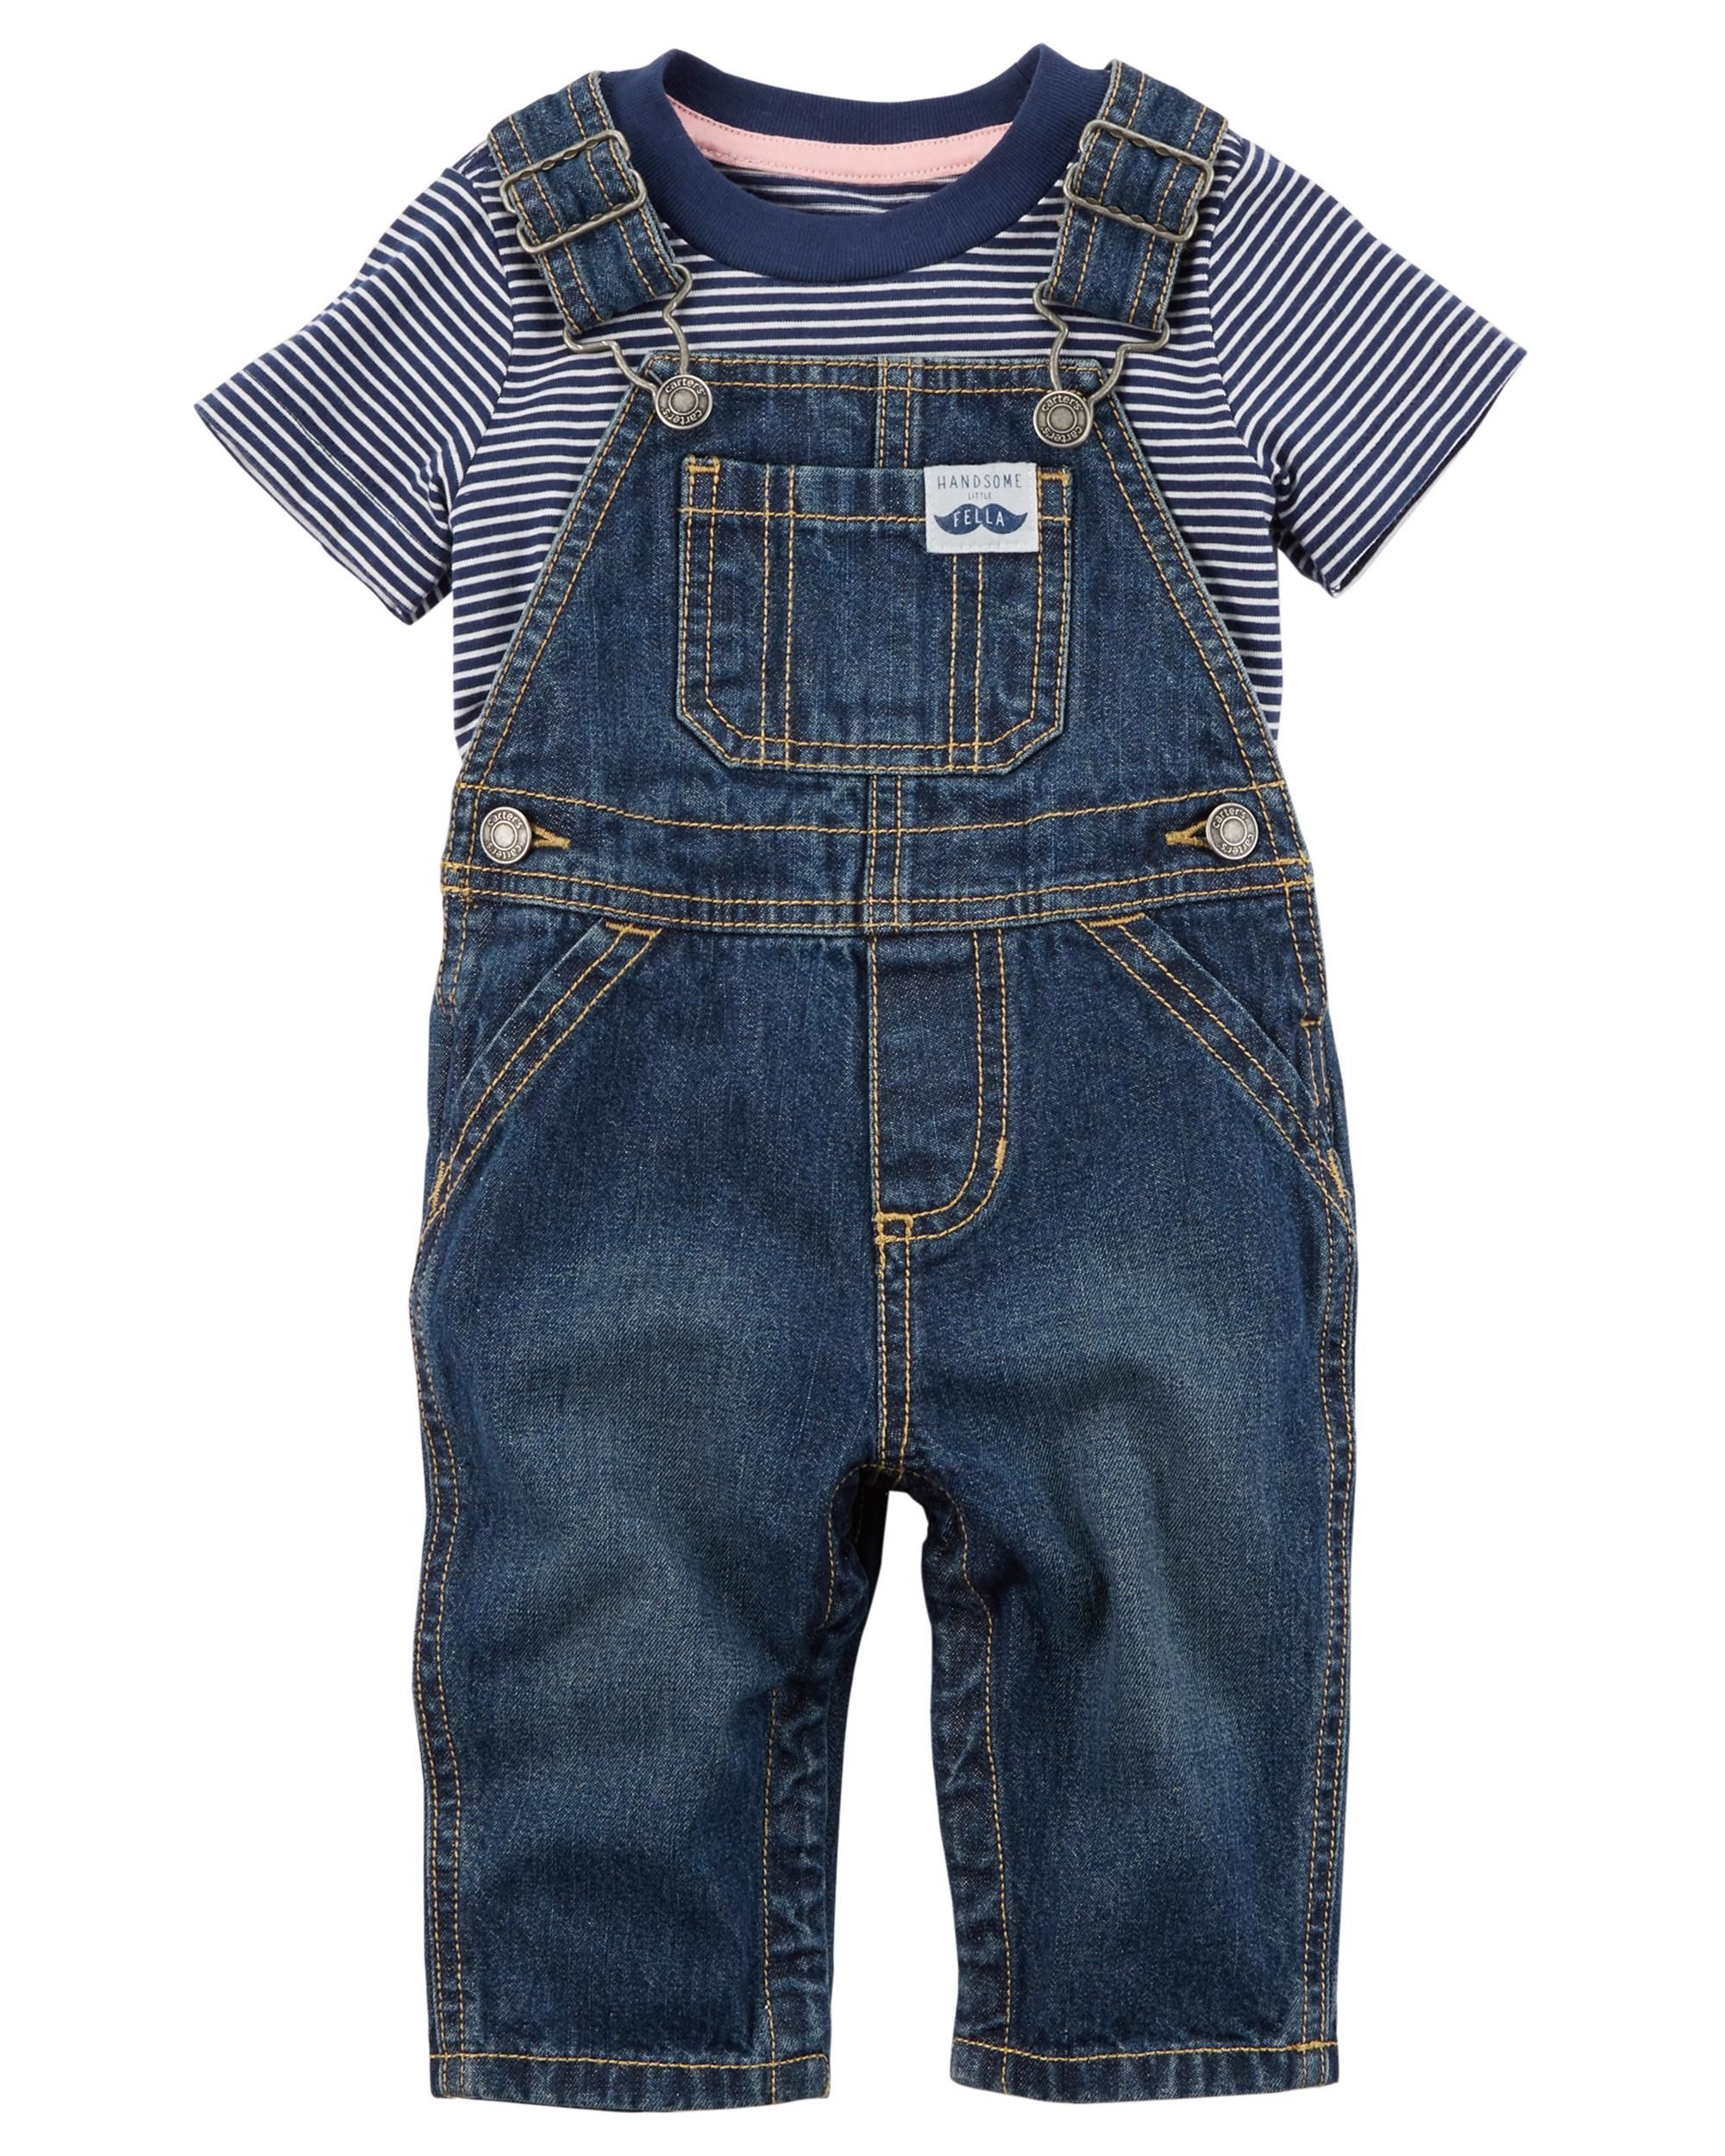 7fd3119ef 2-Piece Striped Tee & Denim Overall Set | BABY&KIDS | Baby boy ...